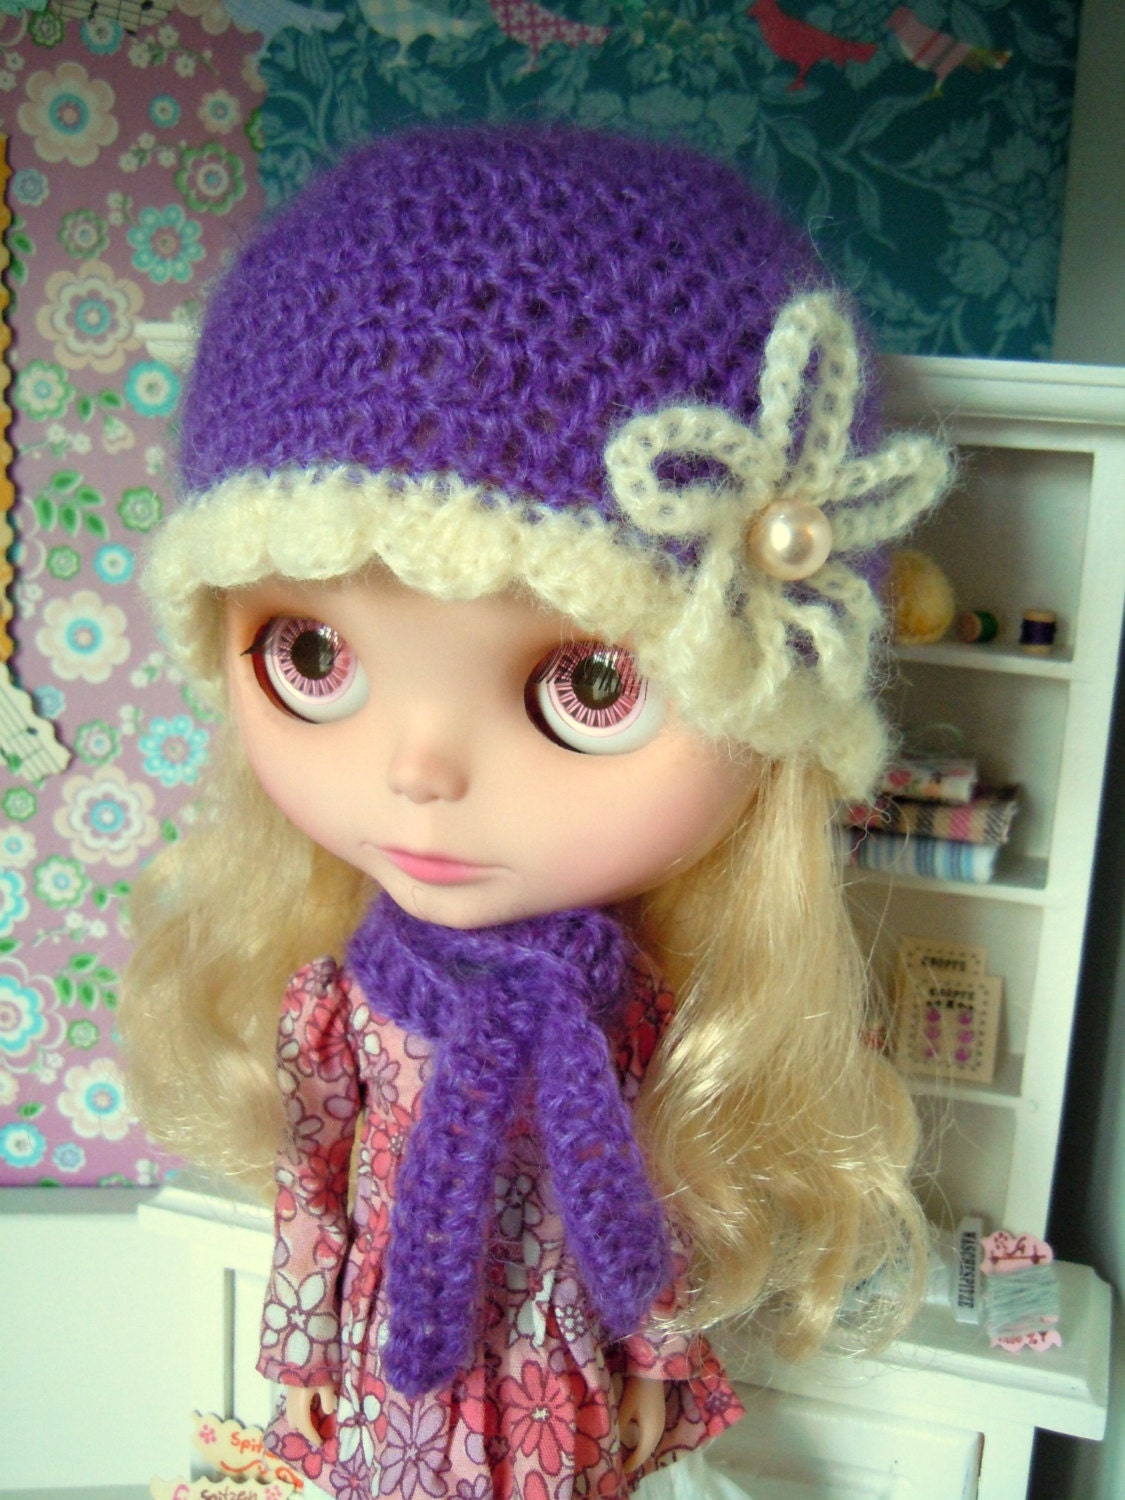 SALE PRICE Crochet hat and scarf for Blythe doll by Herzlichkeiten Crochet Scarf For Sale